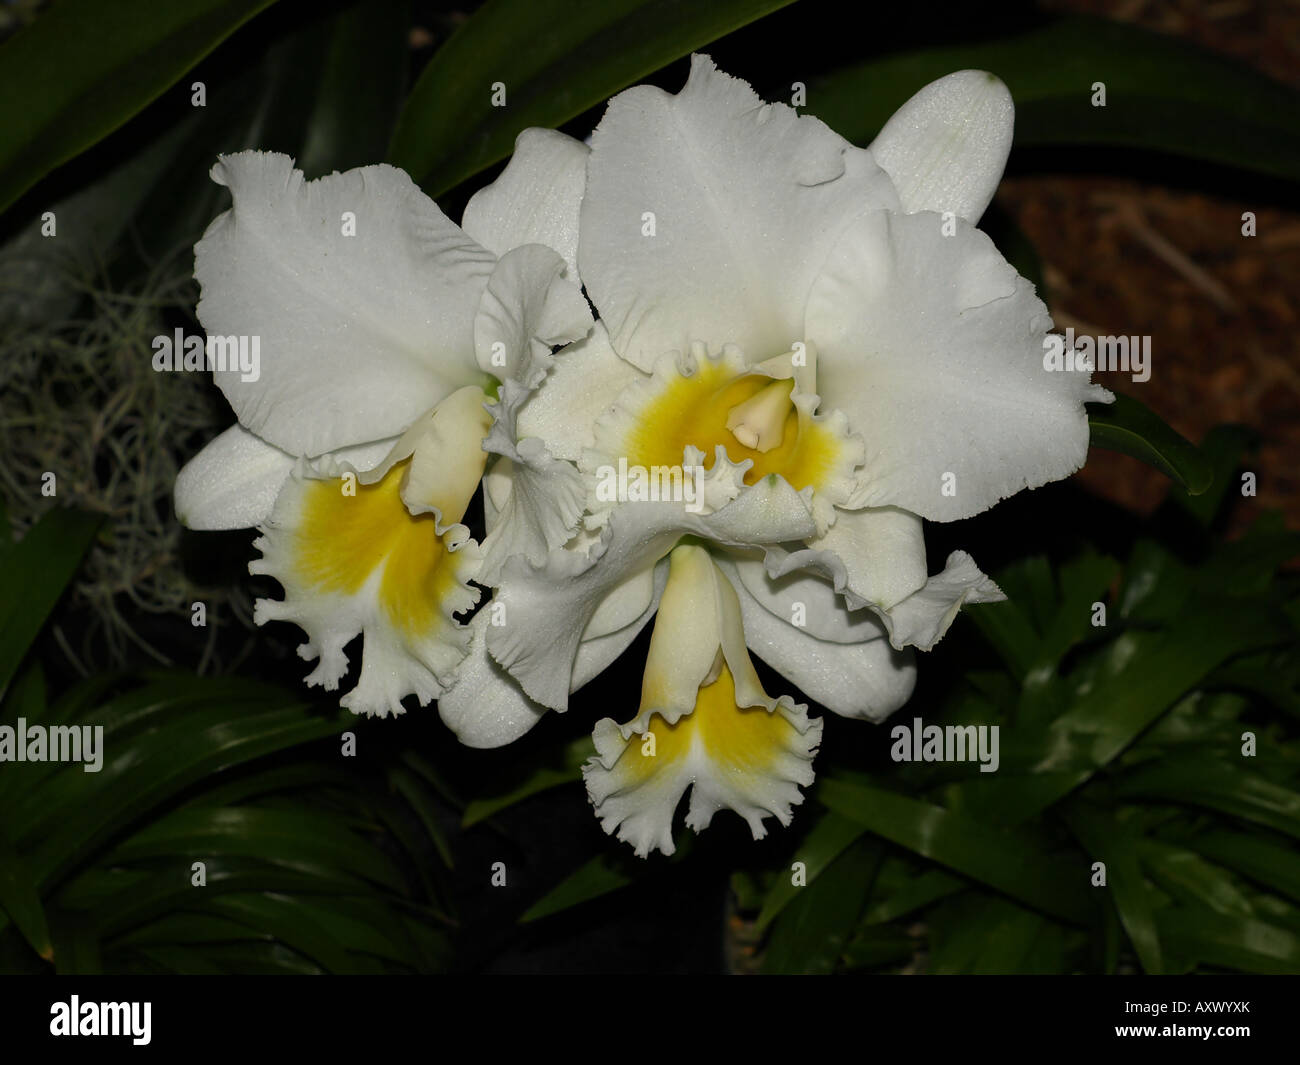 White yellow center orchid flower yard plant tropical hawaii stock white yellow center orchid flower yard plant tropical hawaii mightylinksfo Image collections